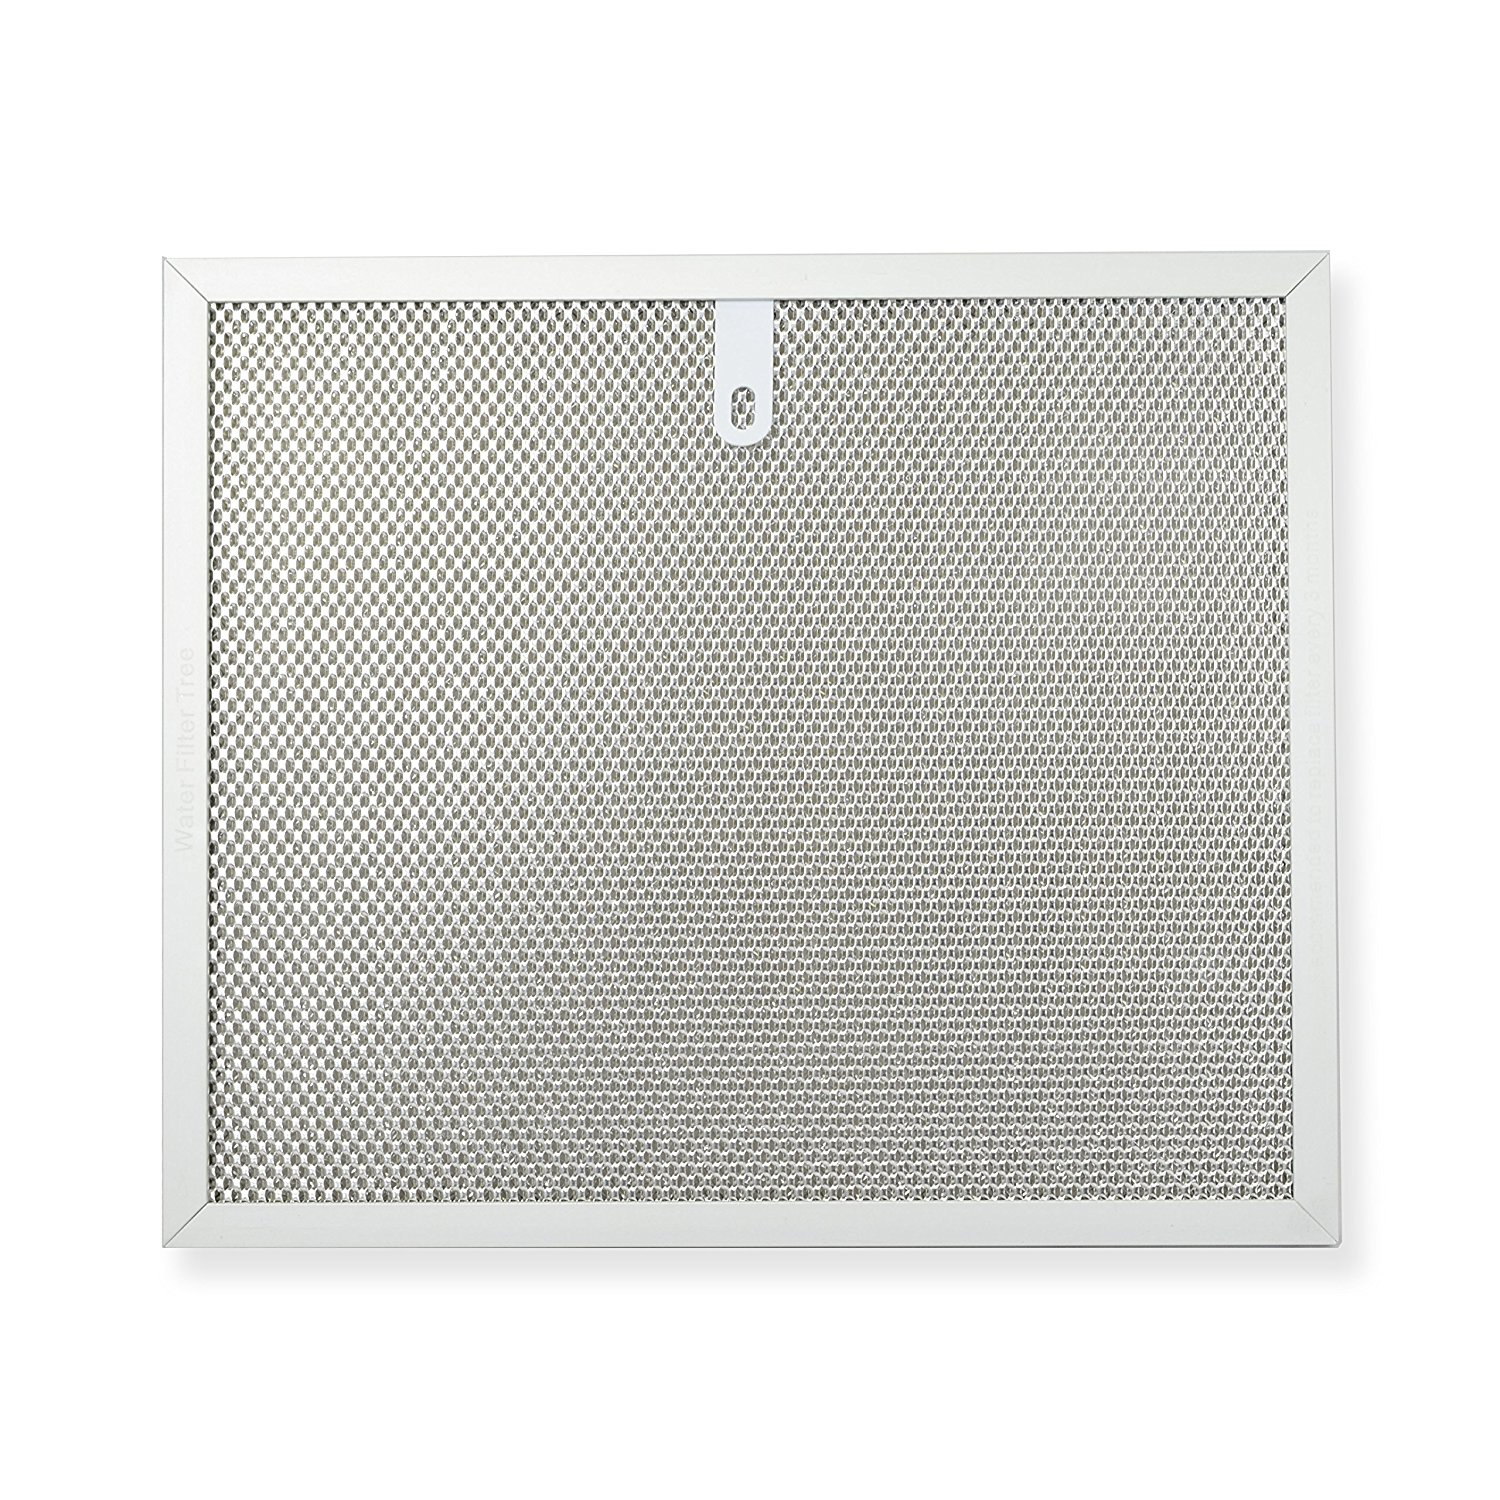 3 Layer Range Hood Filter